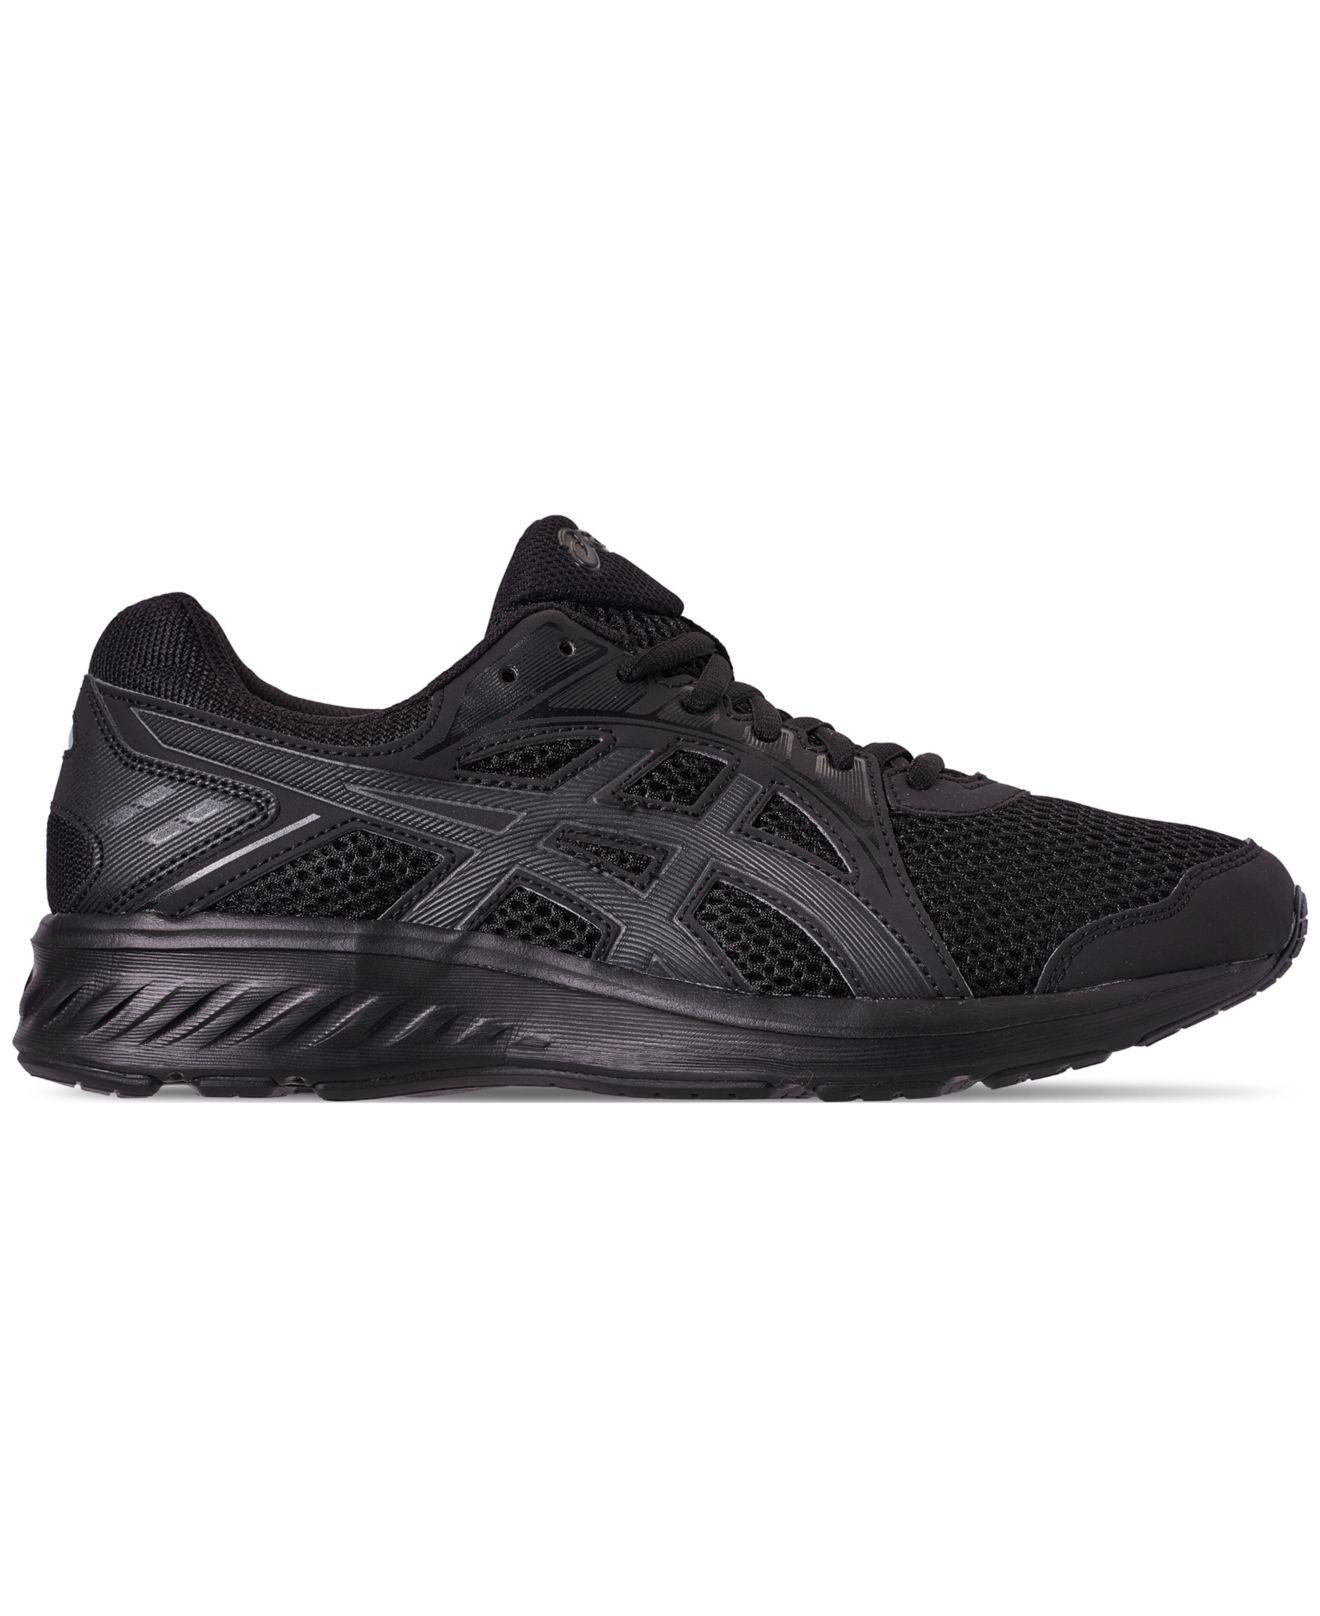 bacd7aaf2cff Lyst - Asics Jolt 2 Wide Width Running Sneakers From Finish Line in Black  for Men